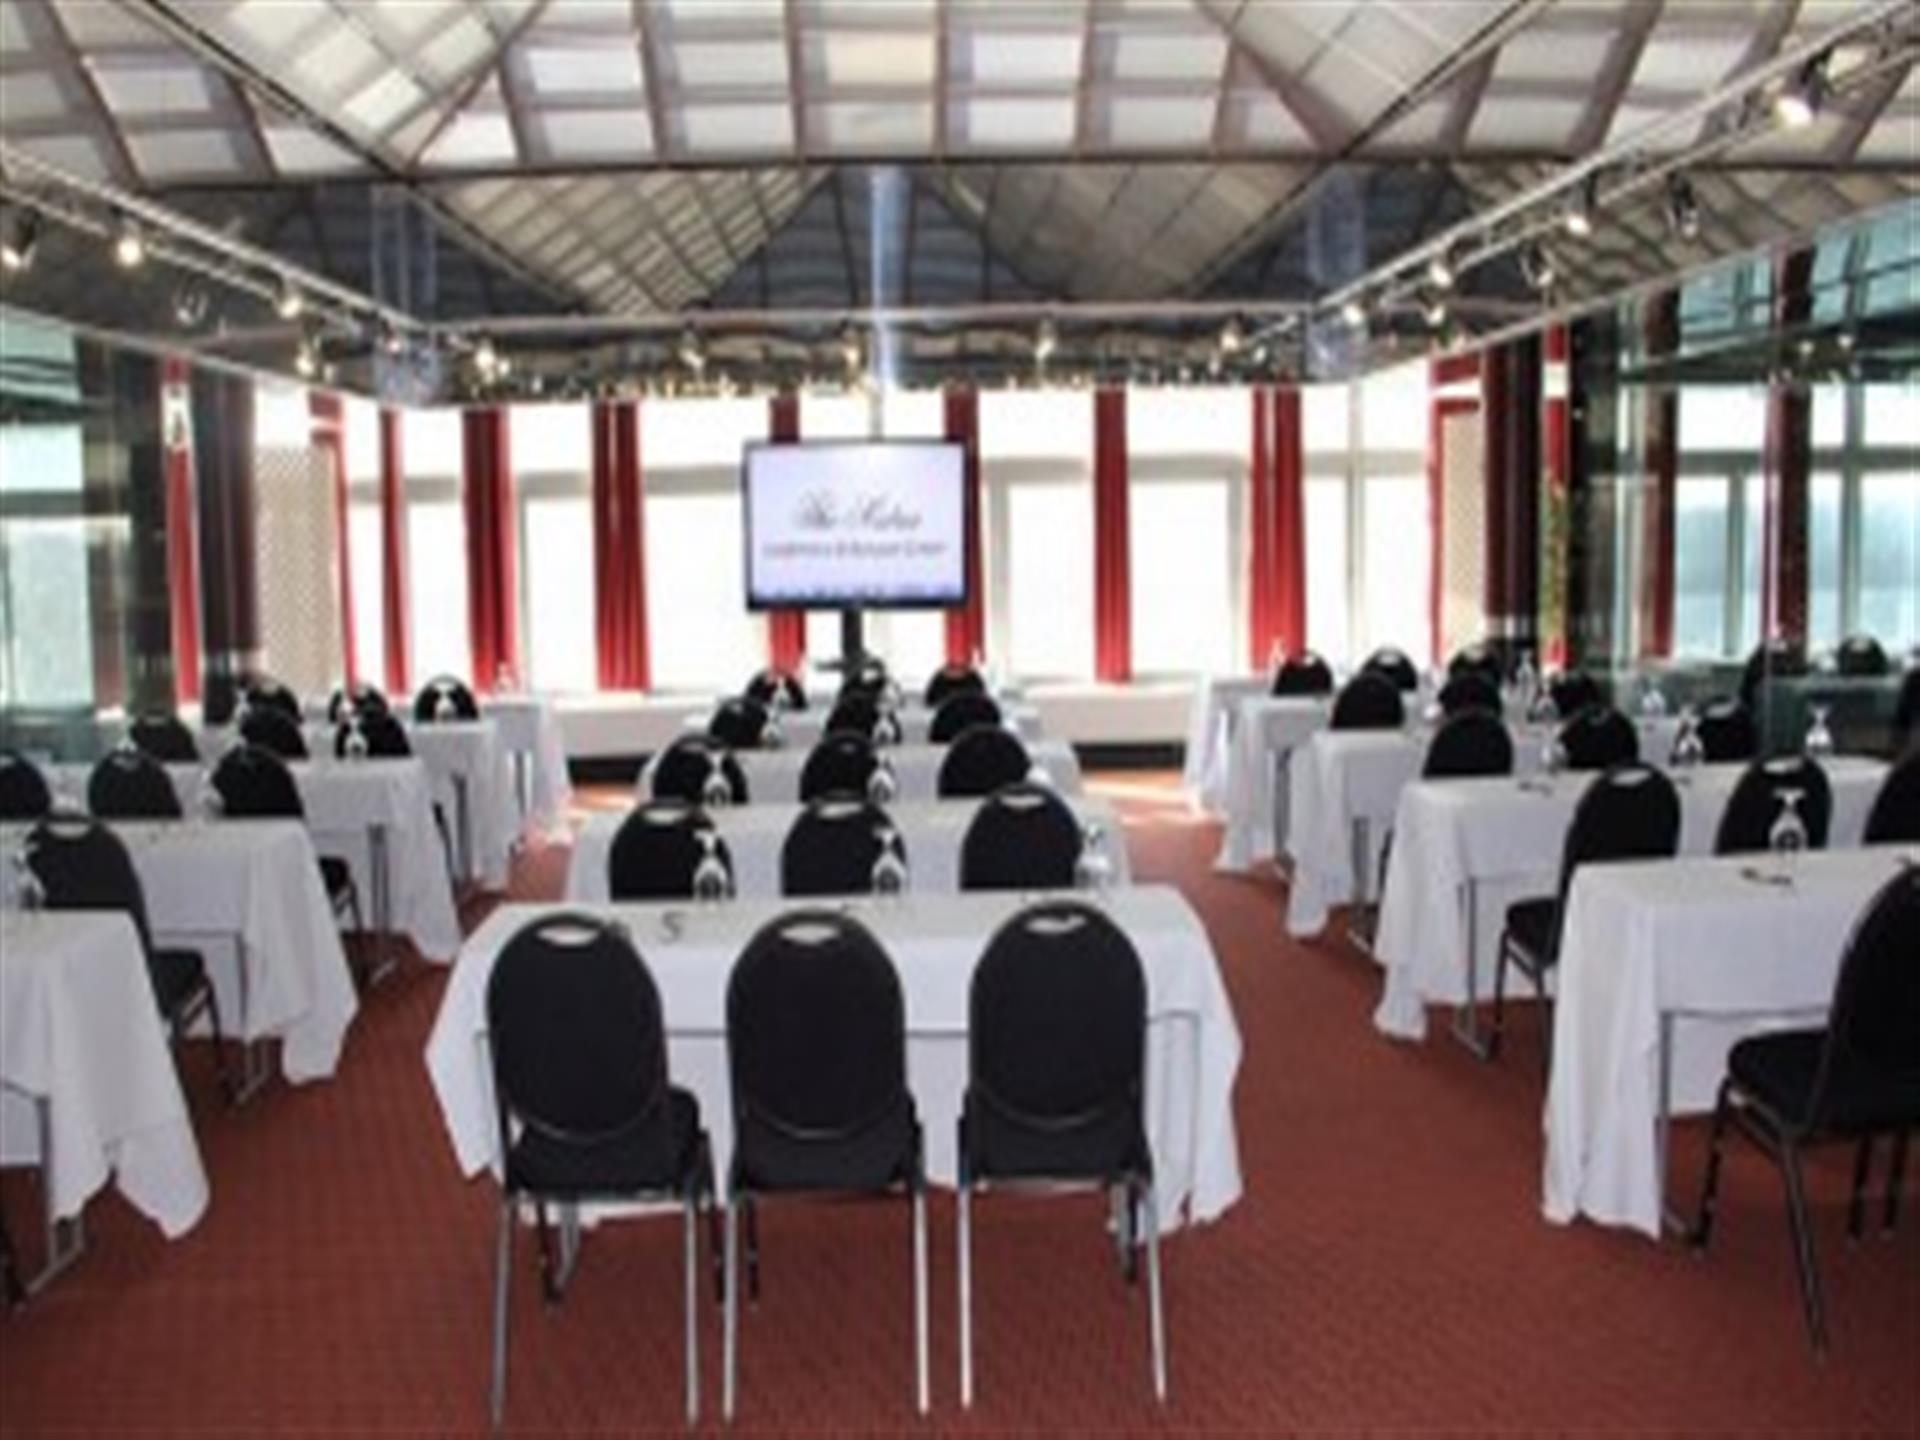 Conference room with white tables and black chairs. Room has red carpet and bright window.